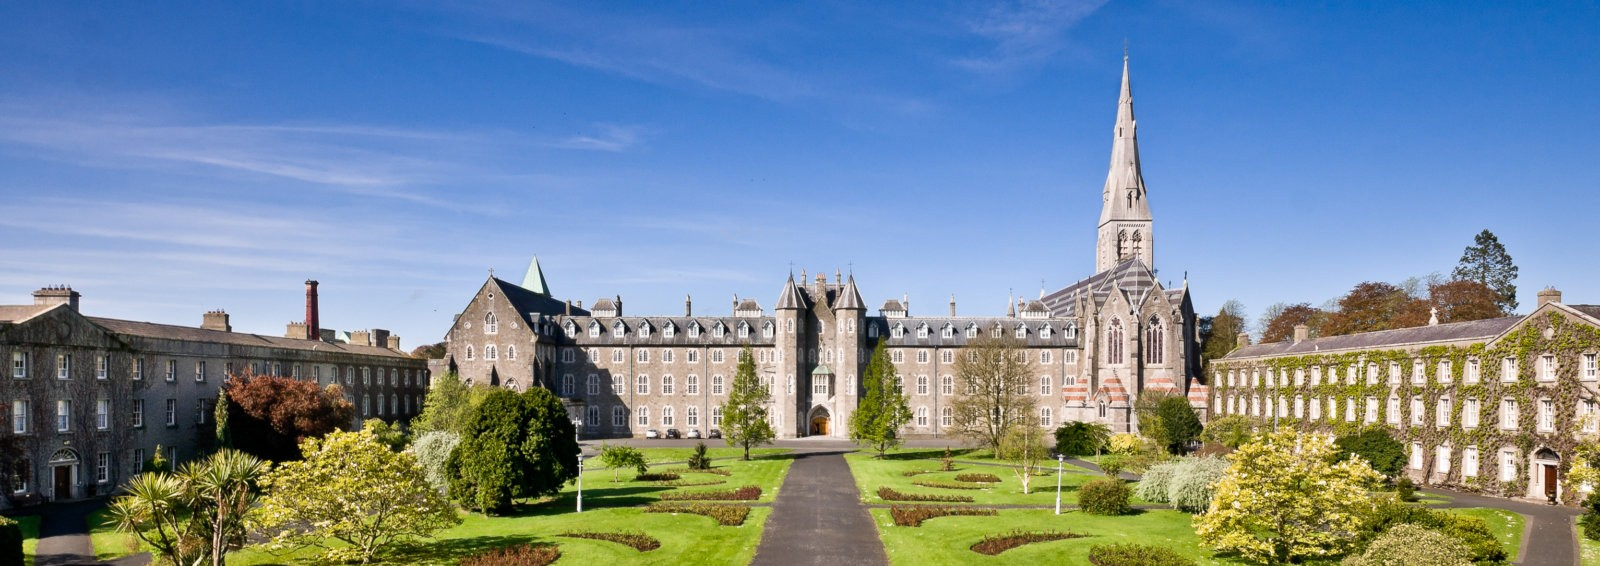 Current Students - Maynooth University